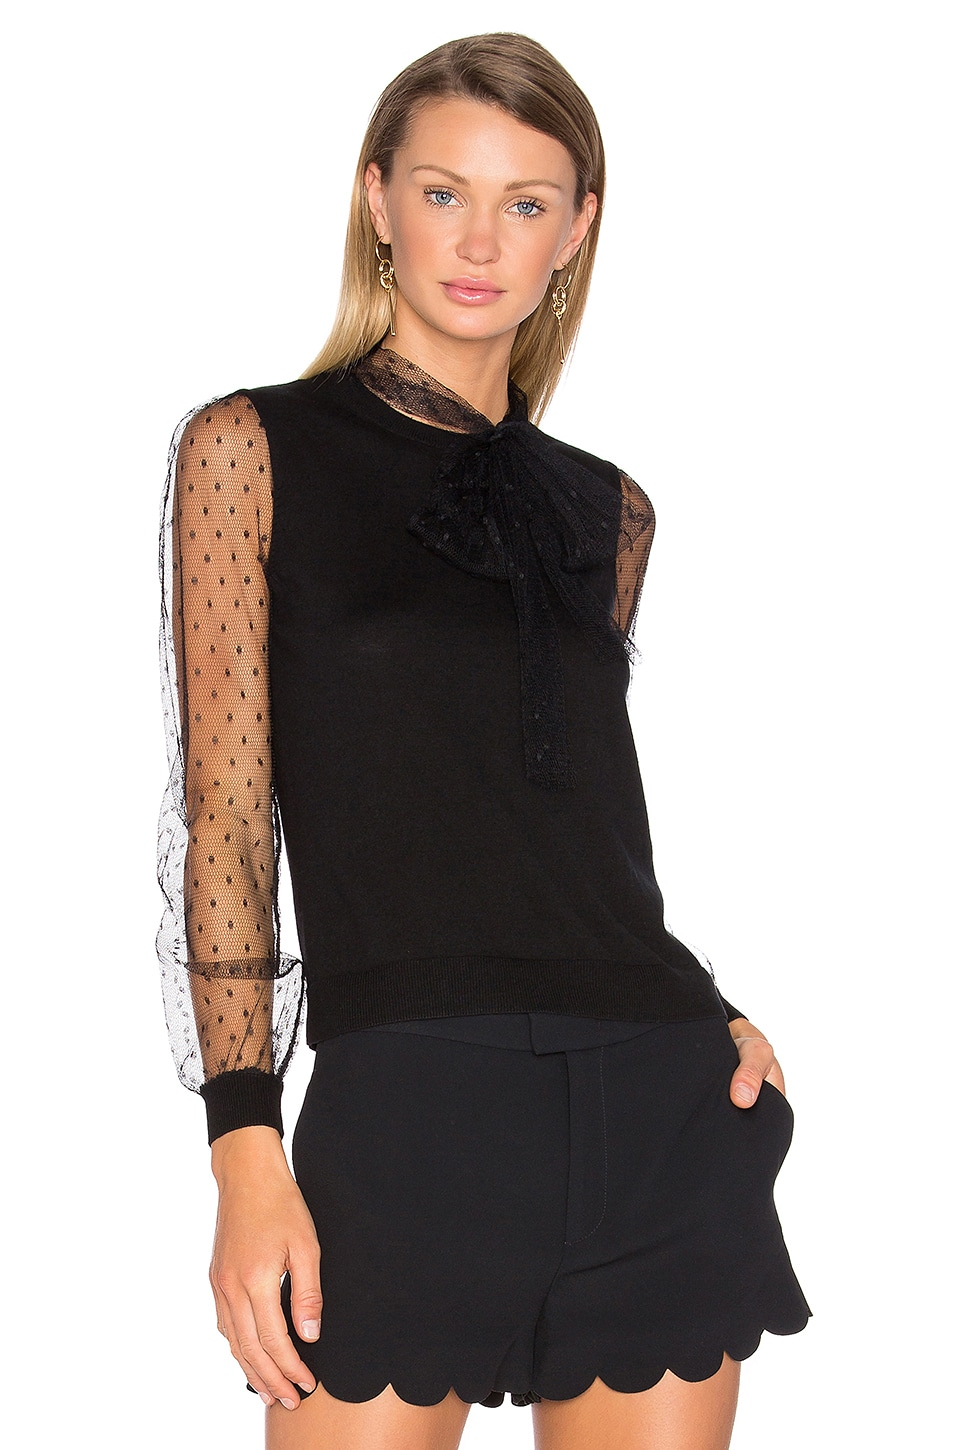 Red Valentino Tie Neck Sweater in Nero